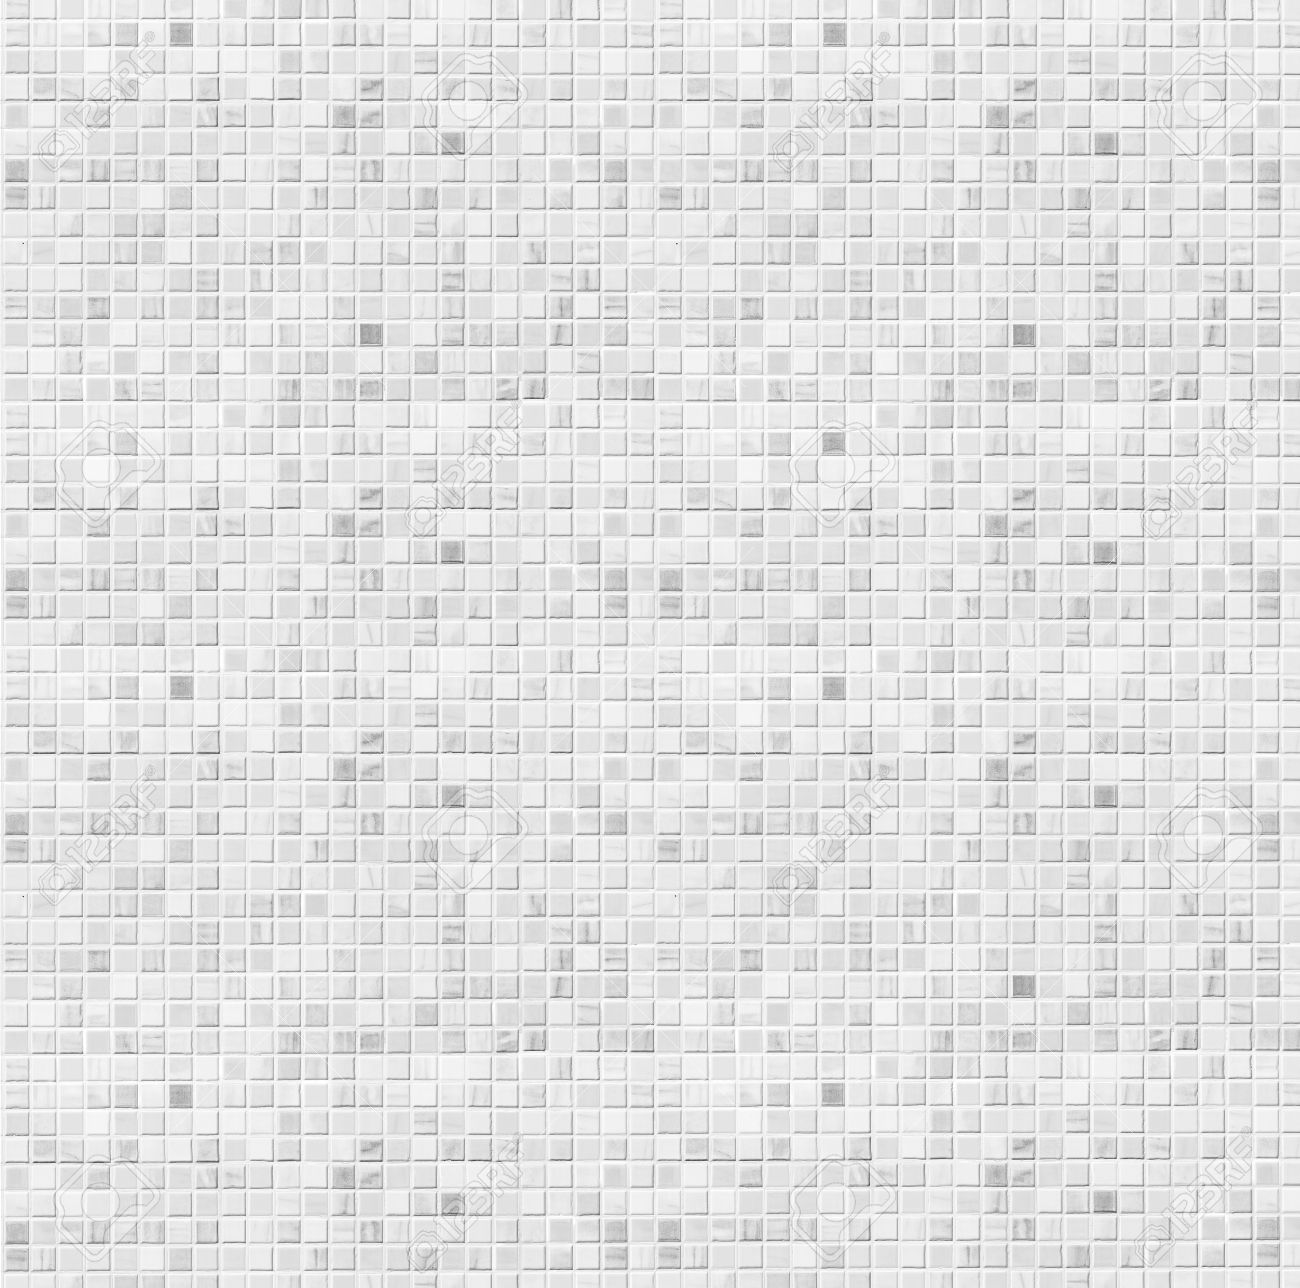 White Ceramic Tile Bathroom Wall Background Stock Photo Picture